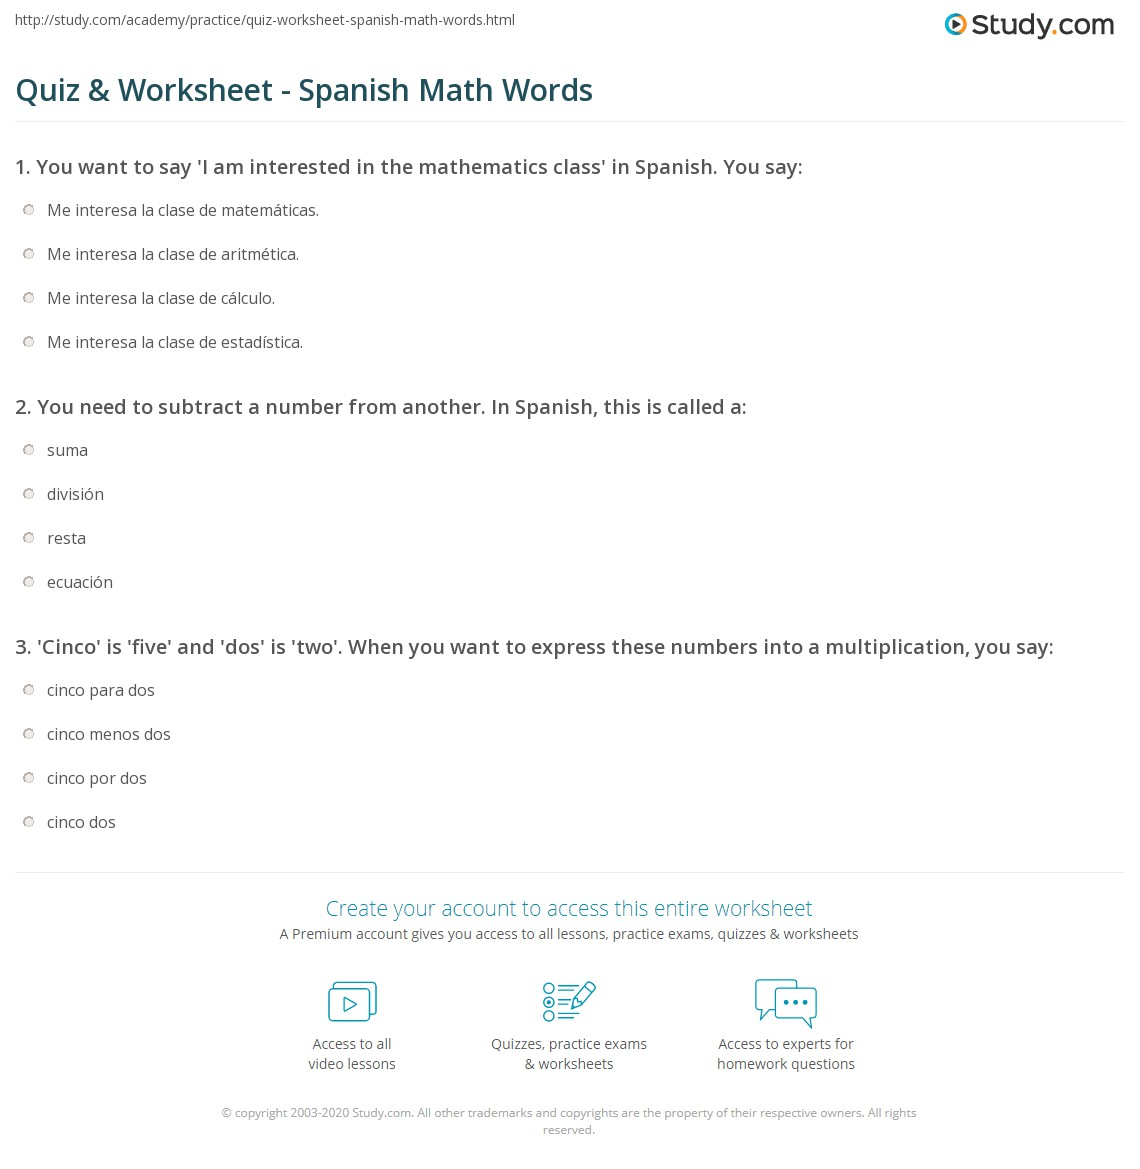 Free Worksheet Math Vocabulary Worksheets quiz worksheet spanish math words study com print terms in worksheet